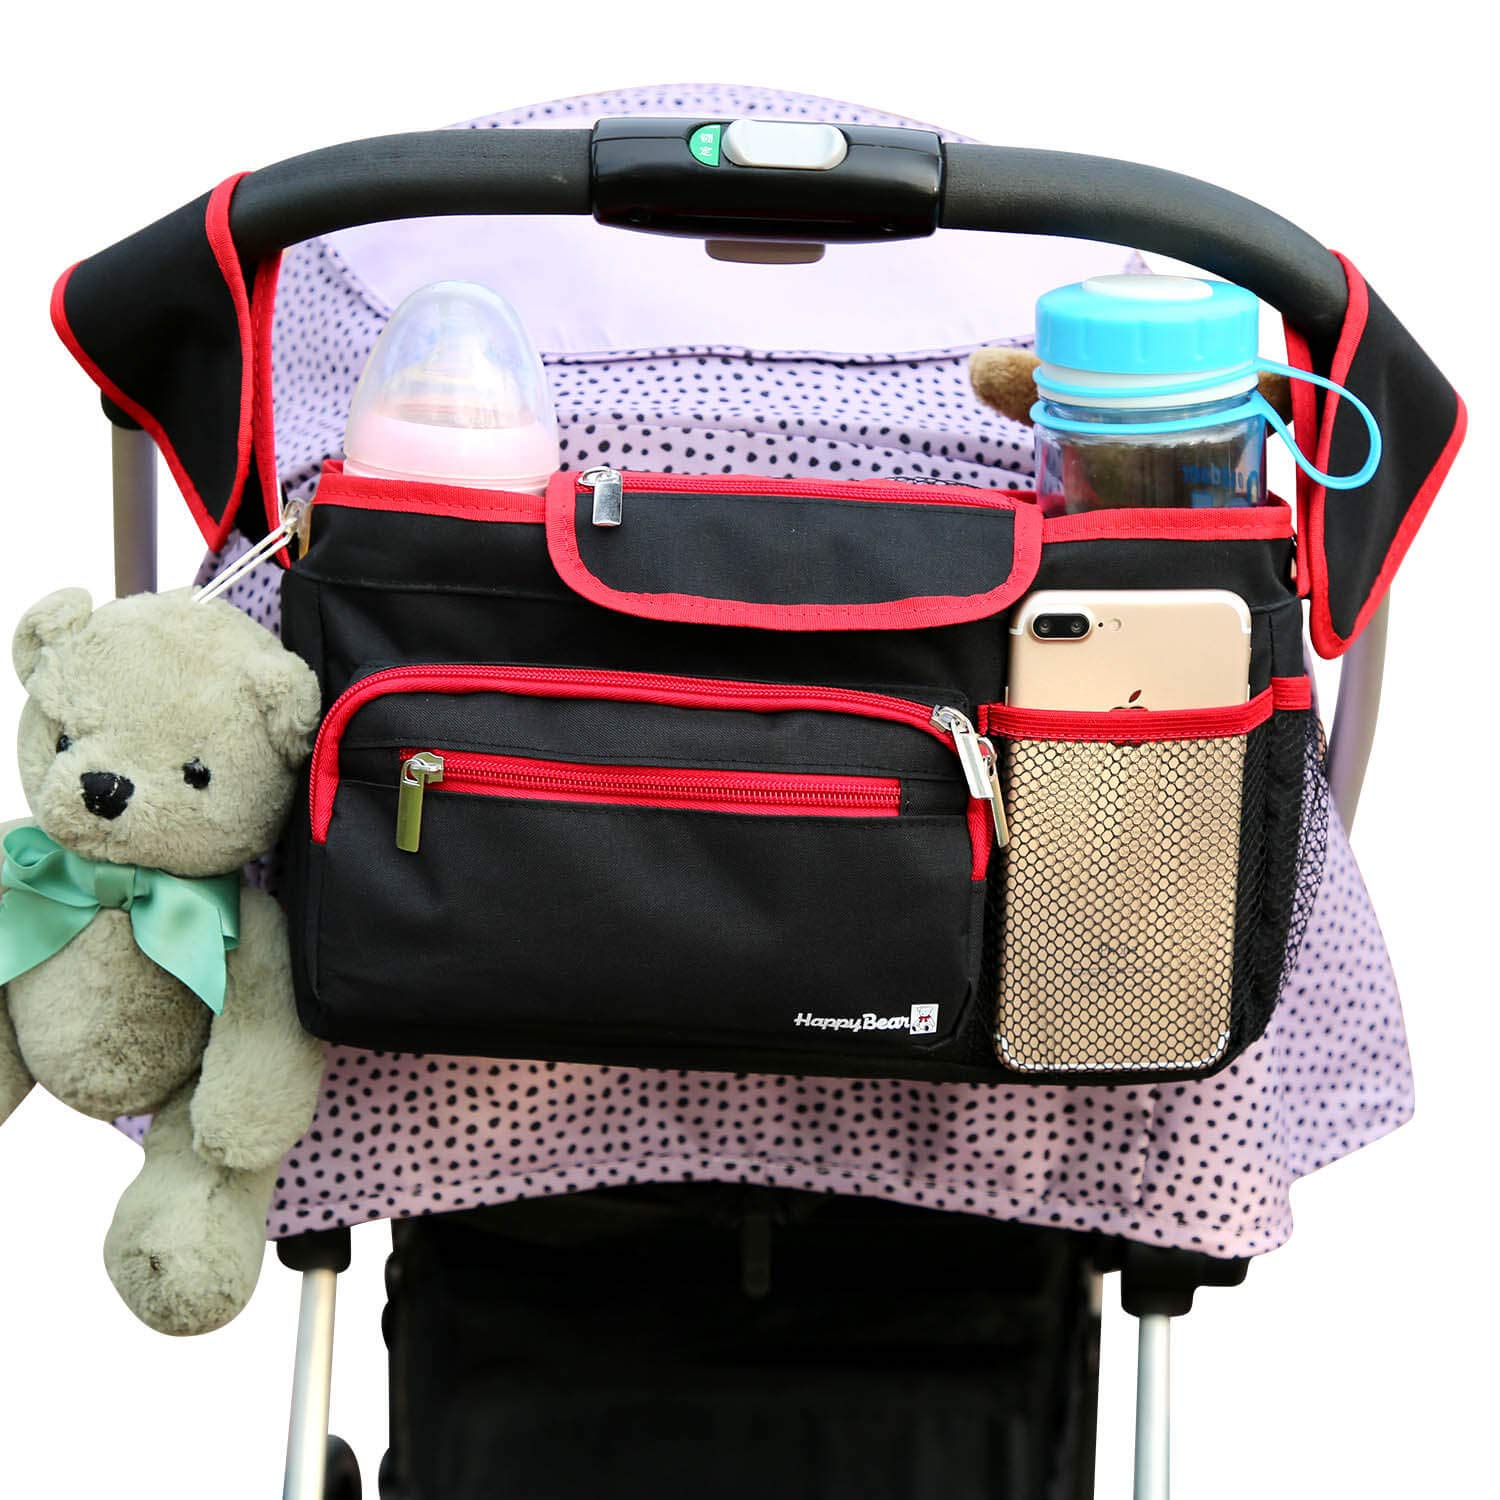 Universal Stroller Organizer Bag with Deep Cup Holders ...